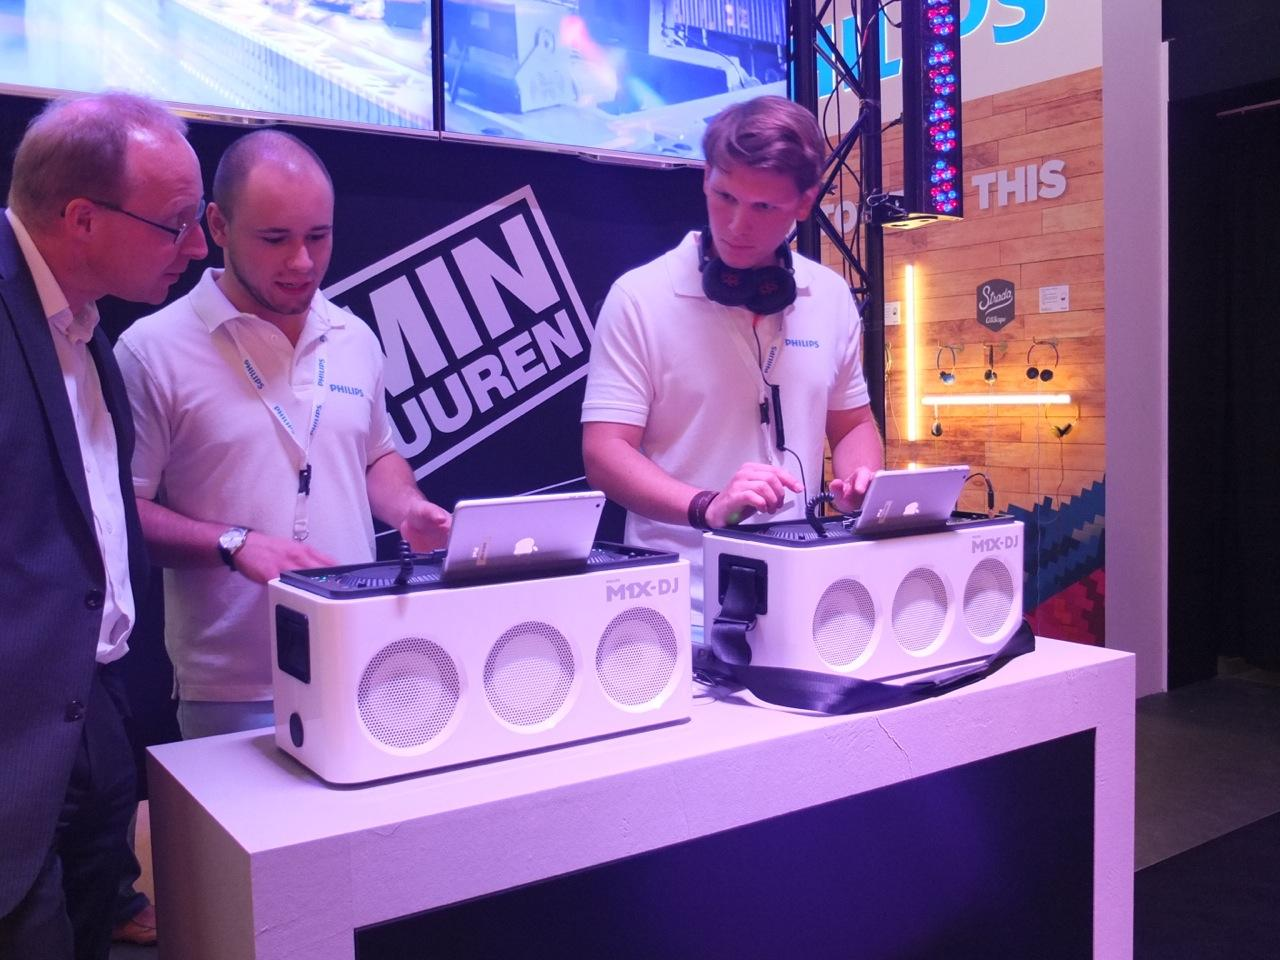 The M1X-DJ Sound System is endorsed by Dutch trance music maestro Armin van Buuren